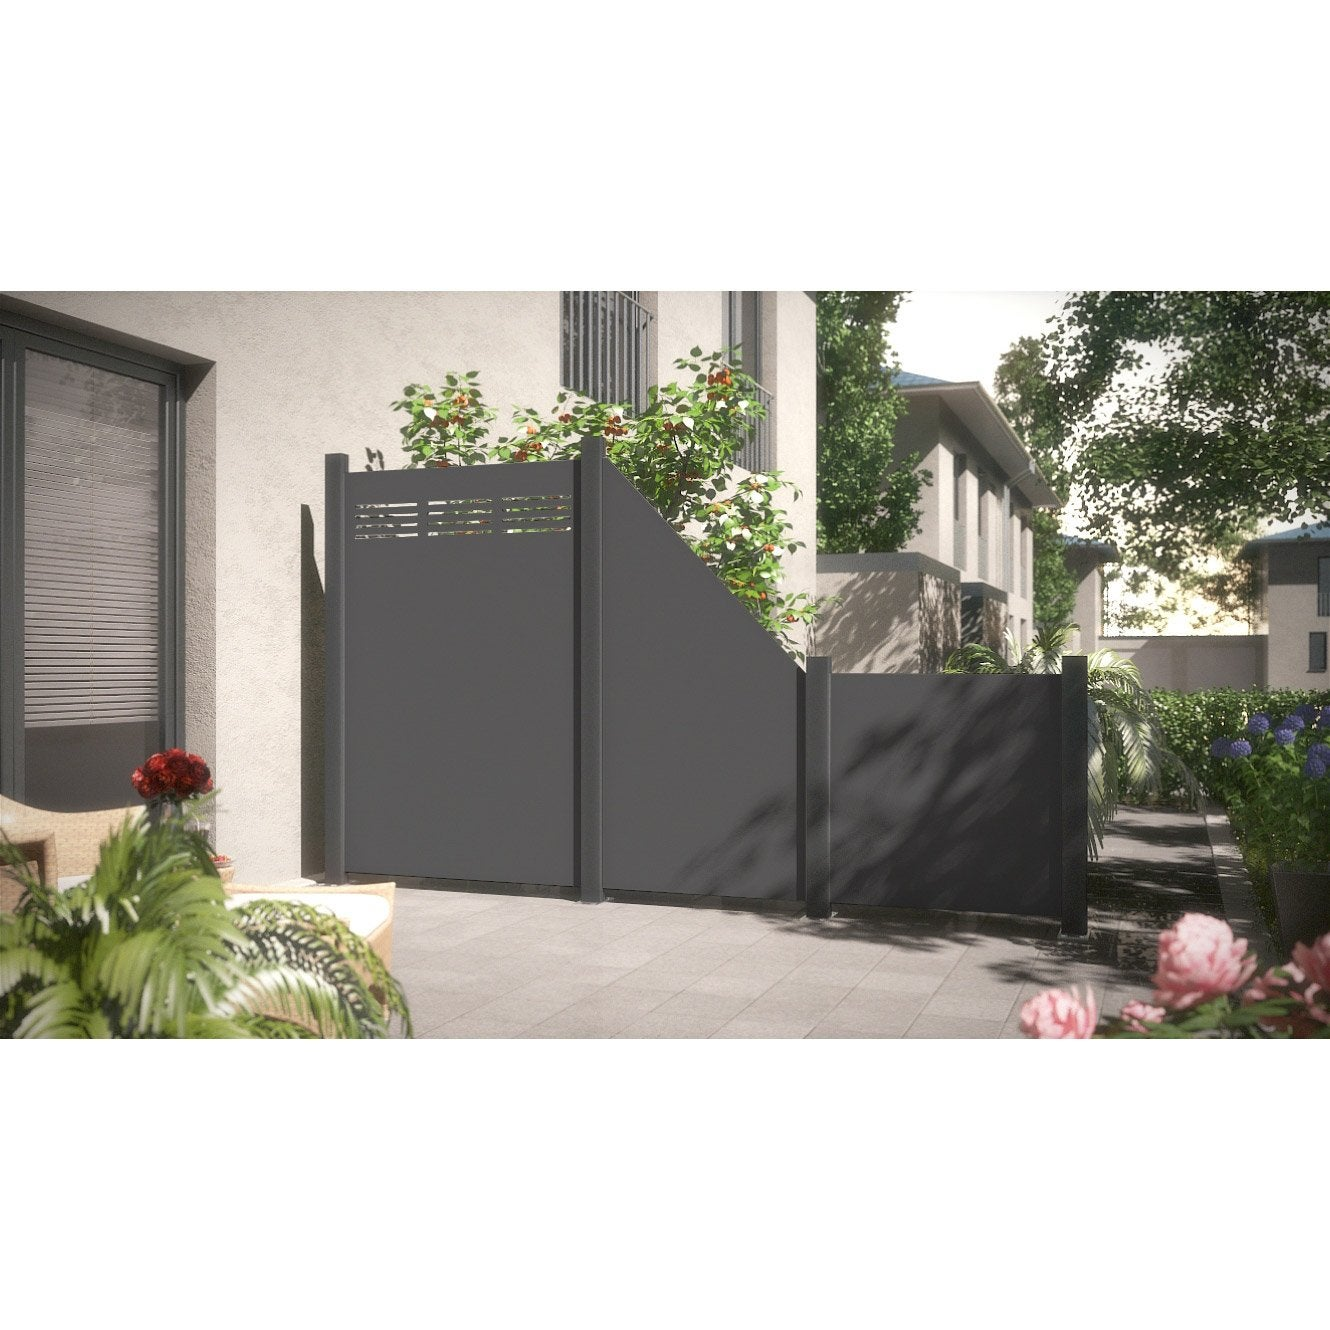 panneau composite aluminium occultant 2380 x. Black Bedroom Furniture Sets. Home Design Ideas